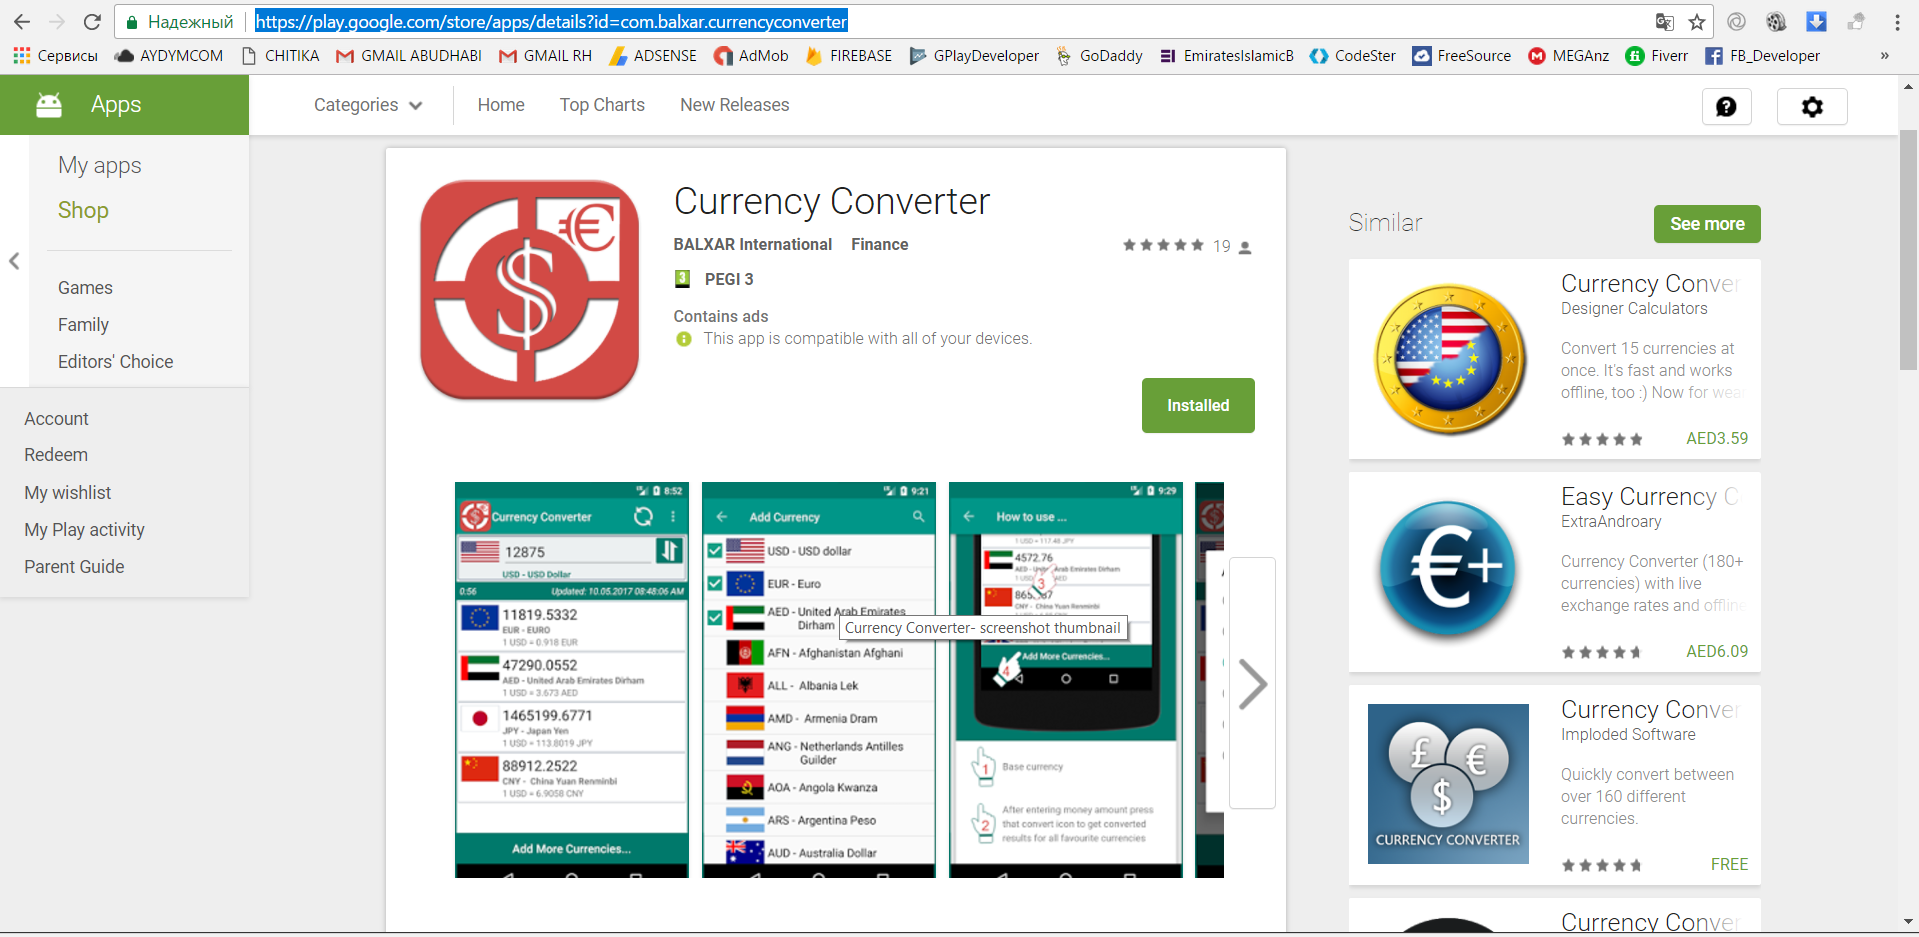 Currency Converter Android S On Google Play